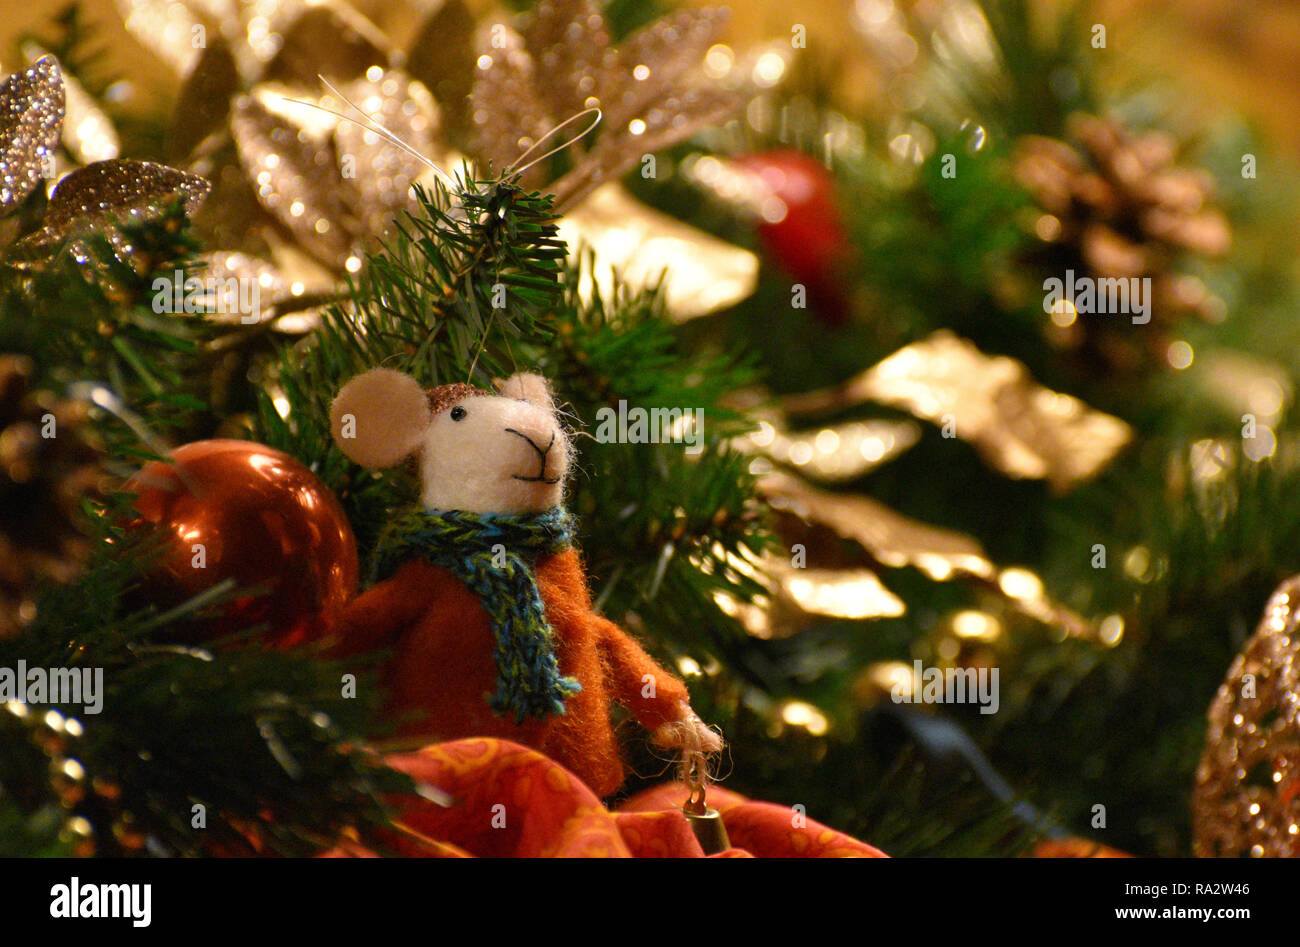 Mouse Christmas Ornament / Decoration - Stock Image